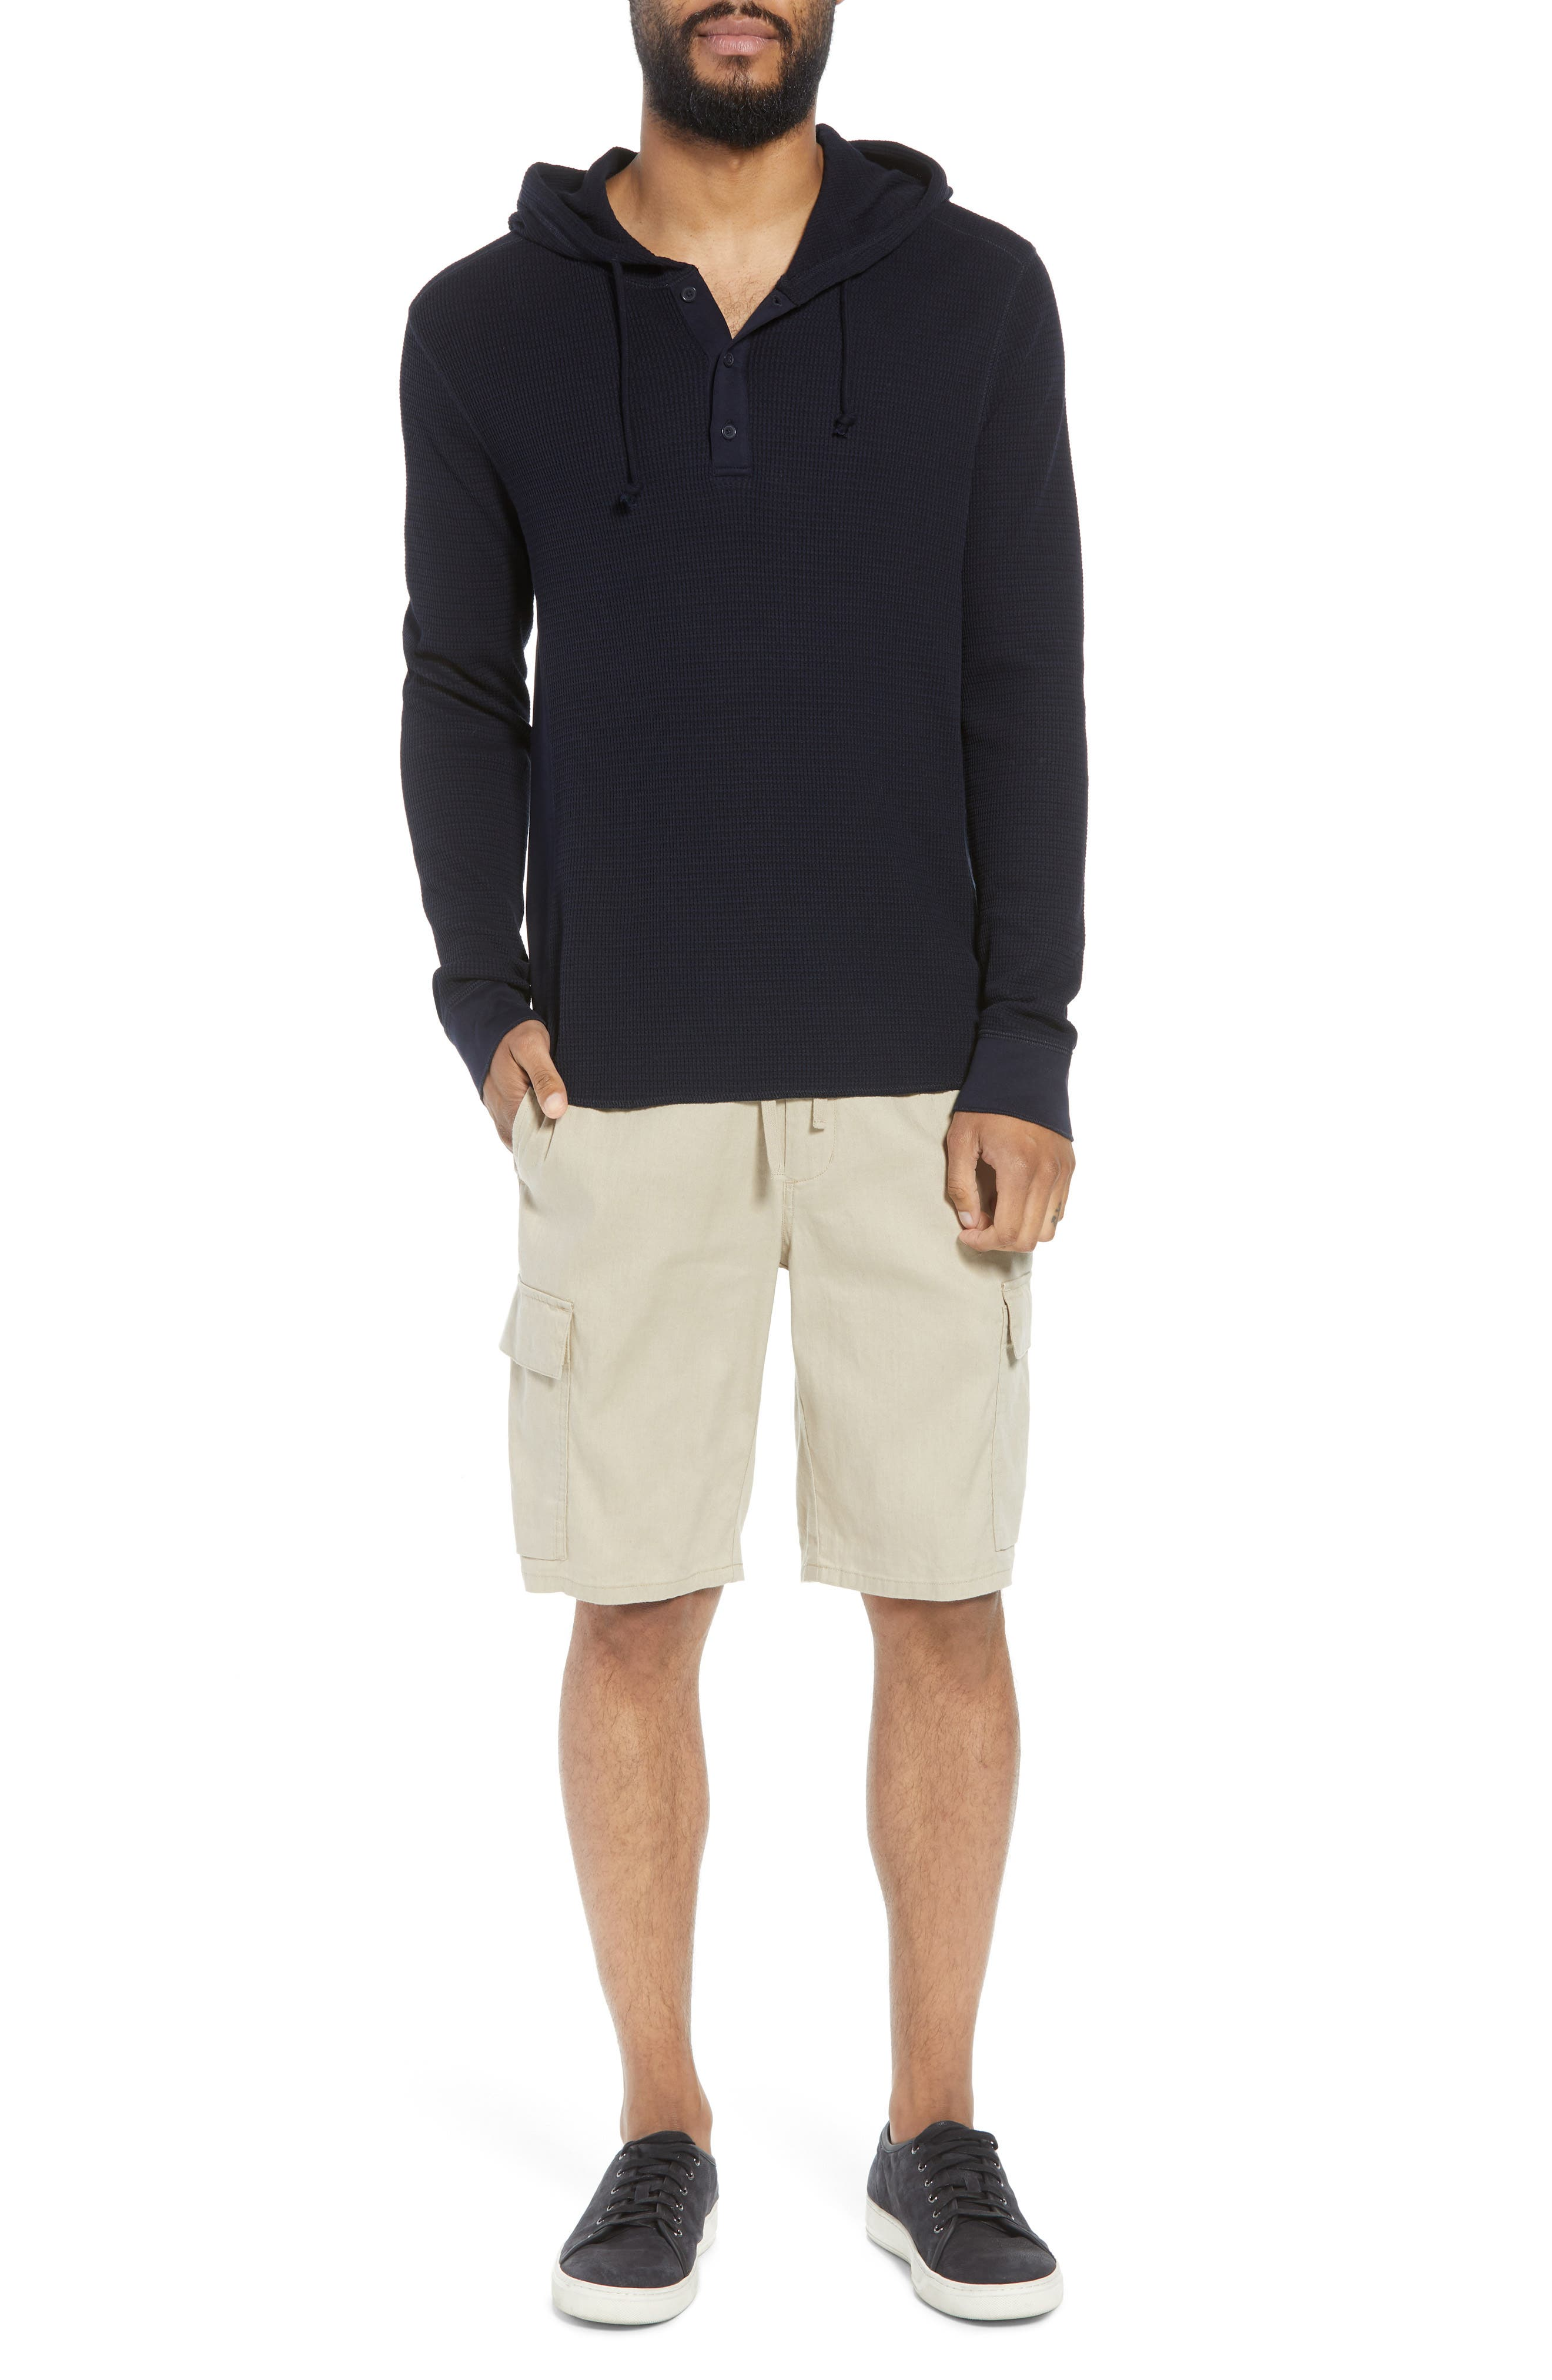 Regular Fit Thermal Knit Pullover Hoodie,                             Alternate thumbnail 6, color,                             New Coastal